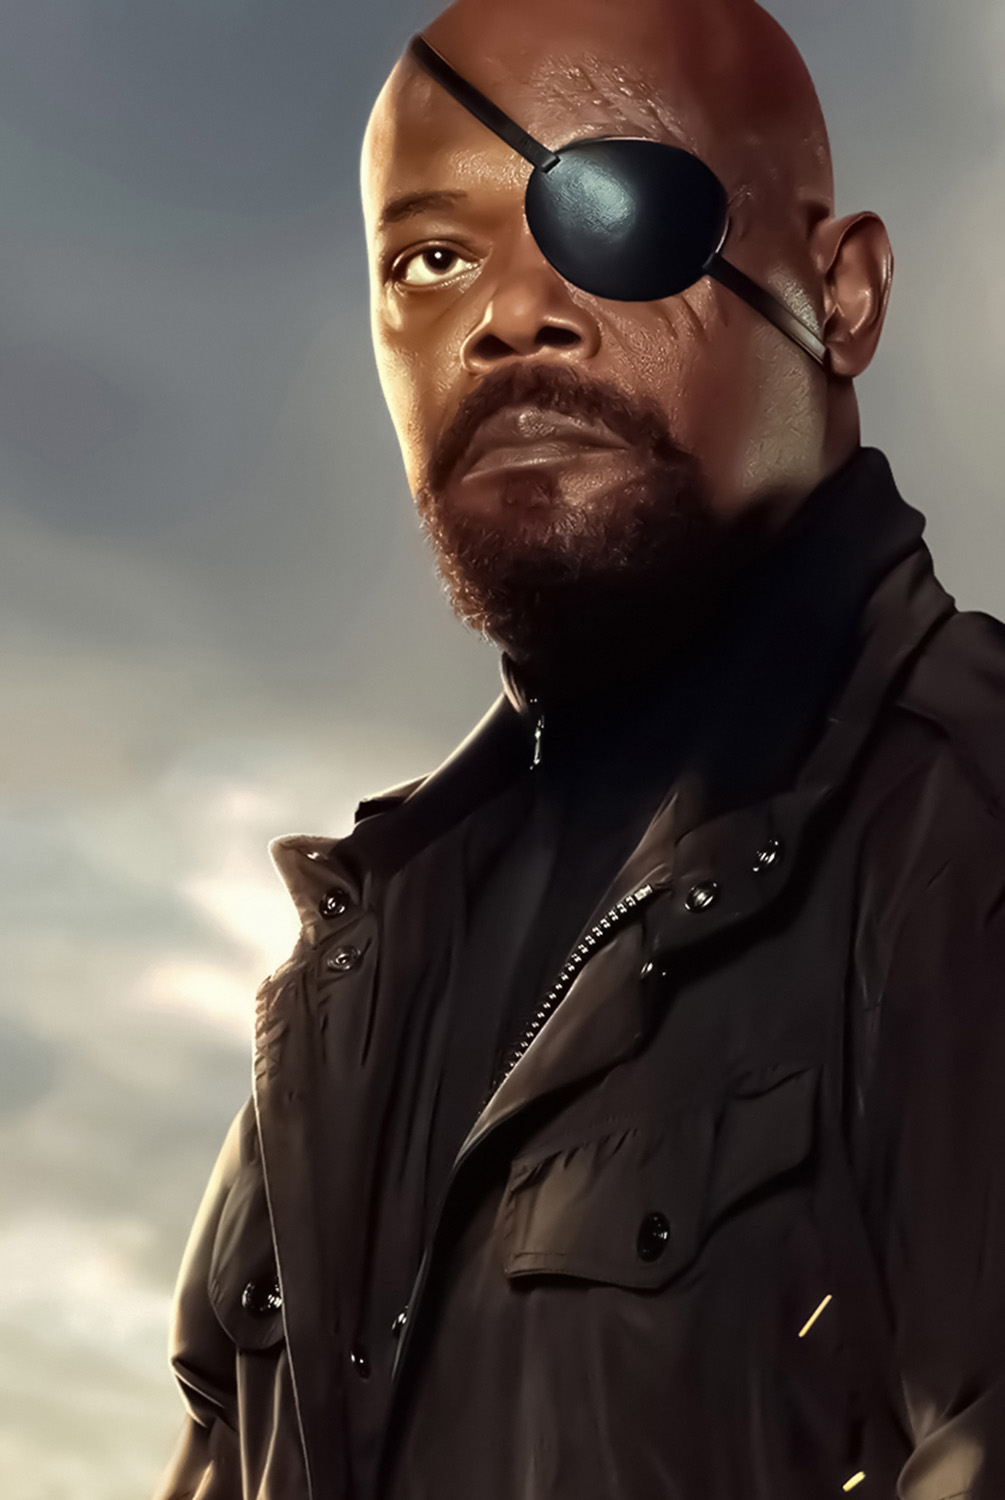 Nick fury ffh textless poster